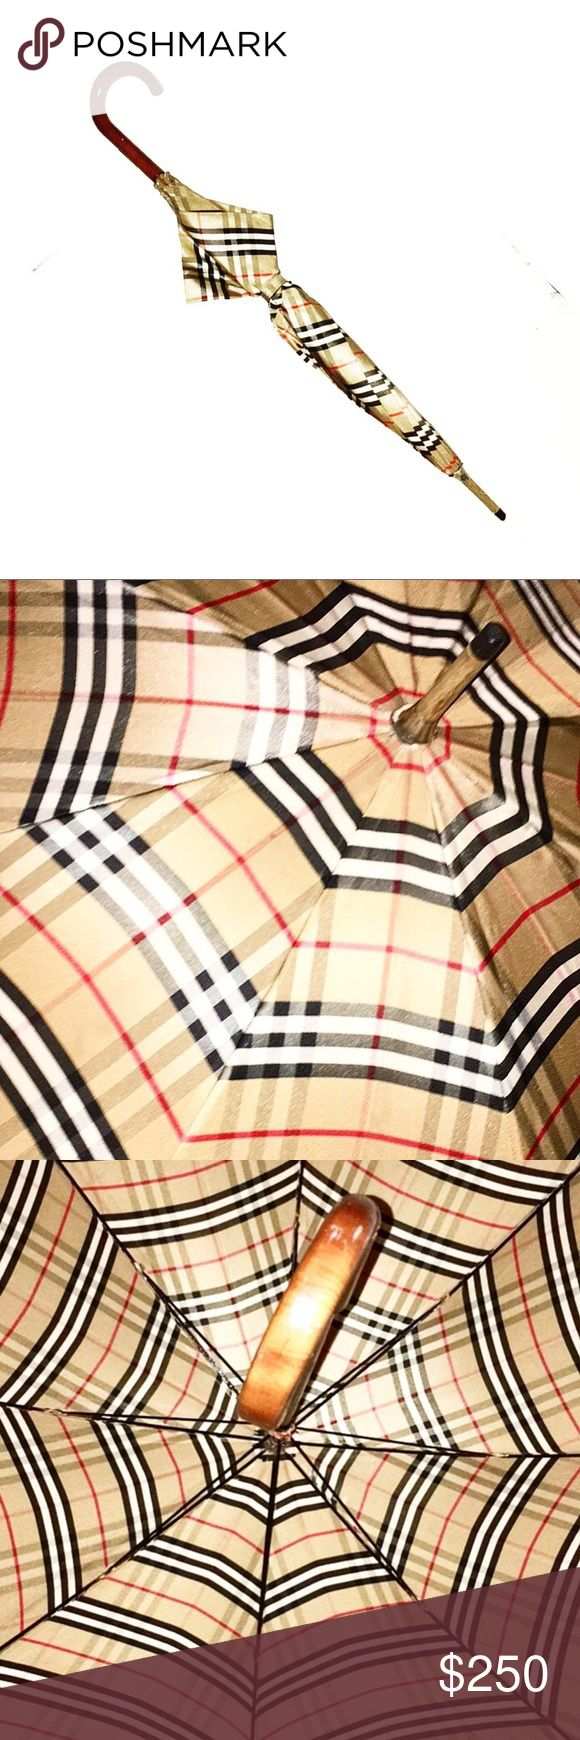 "Authentic Vintage Burberry Nova Check Umbrella Authentic Burberry Vintage Nova Check Walking Umbrella  Hallmark:Burberry's Wooden Handle & Tip with Polyamide Nova Check Material  Length 34"" Diameter is 42"" when Open Burberry Accessories Umbrellas"